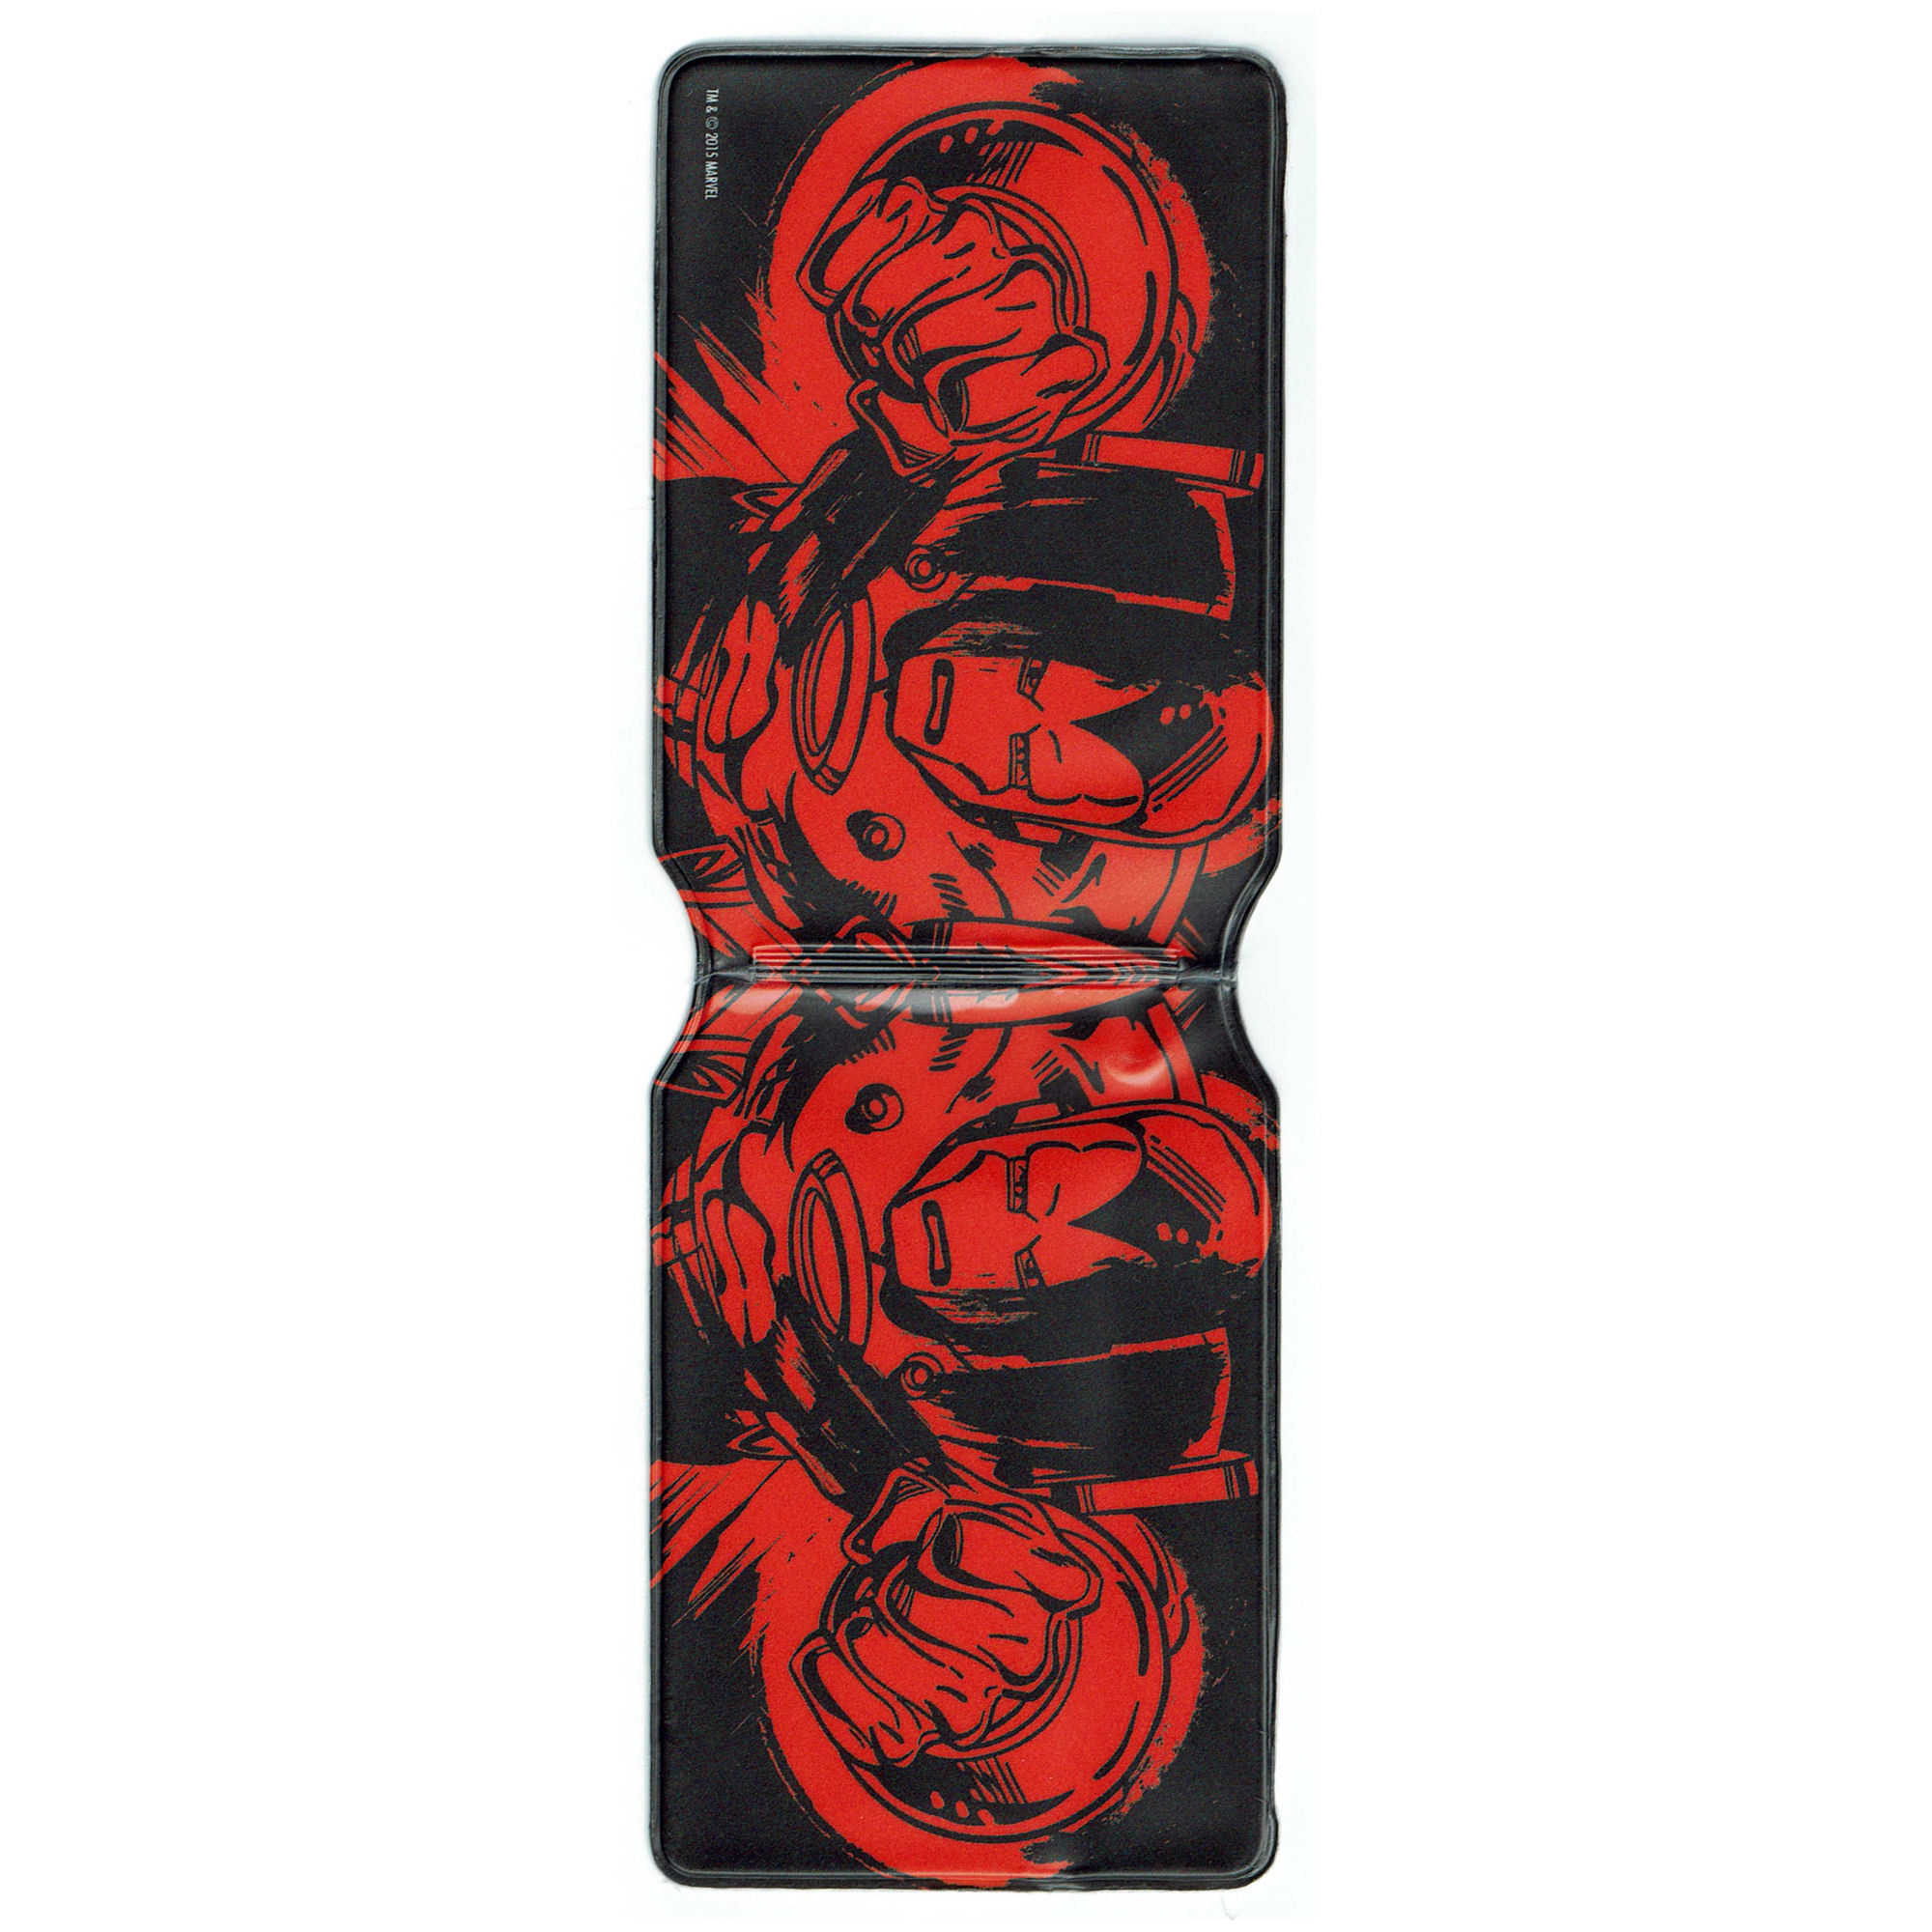 Iron Man Black On Red Oyster Travel Card Holder Bus Train